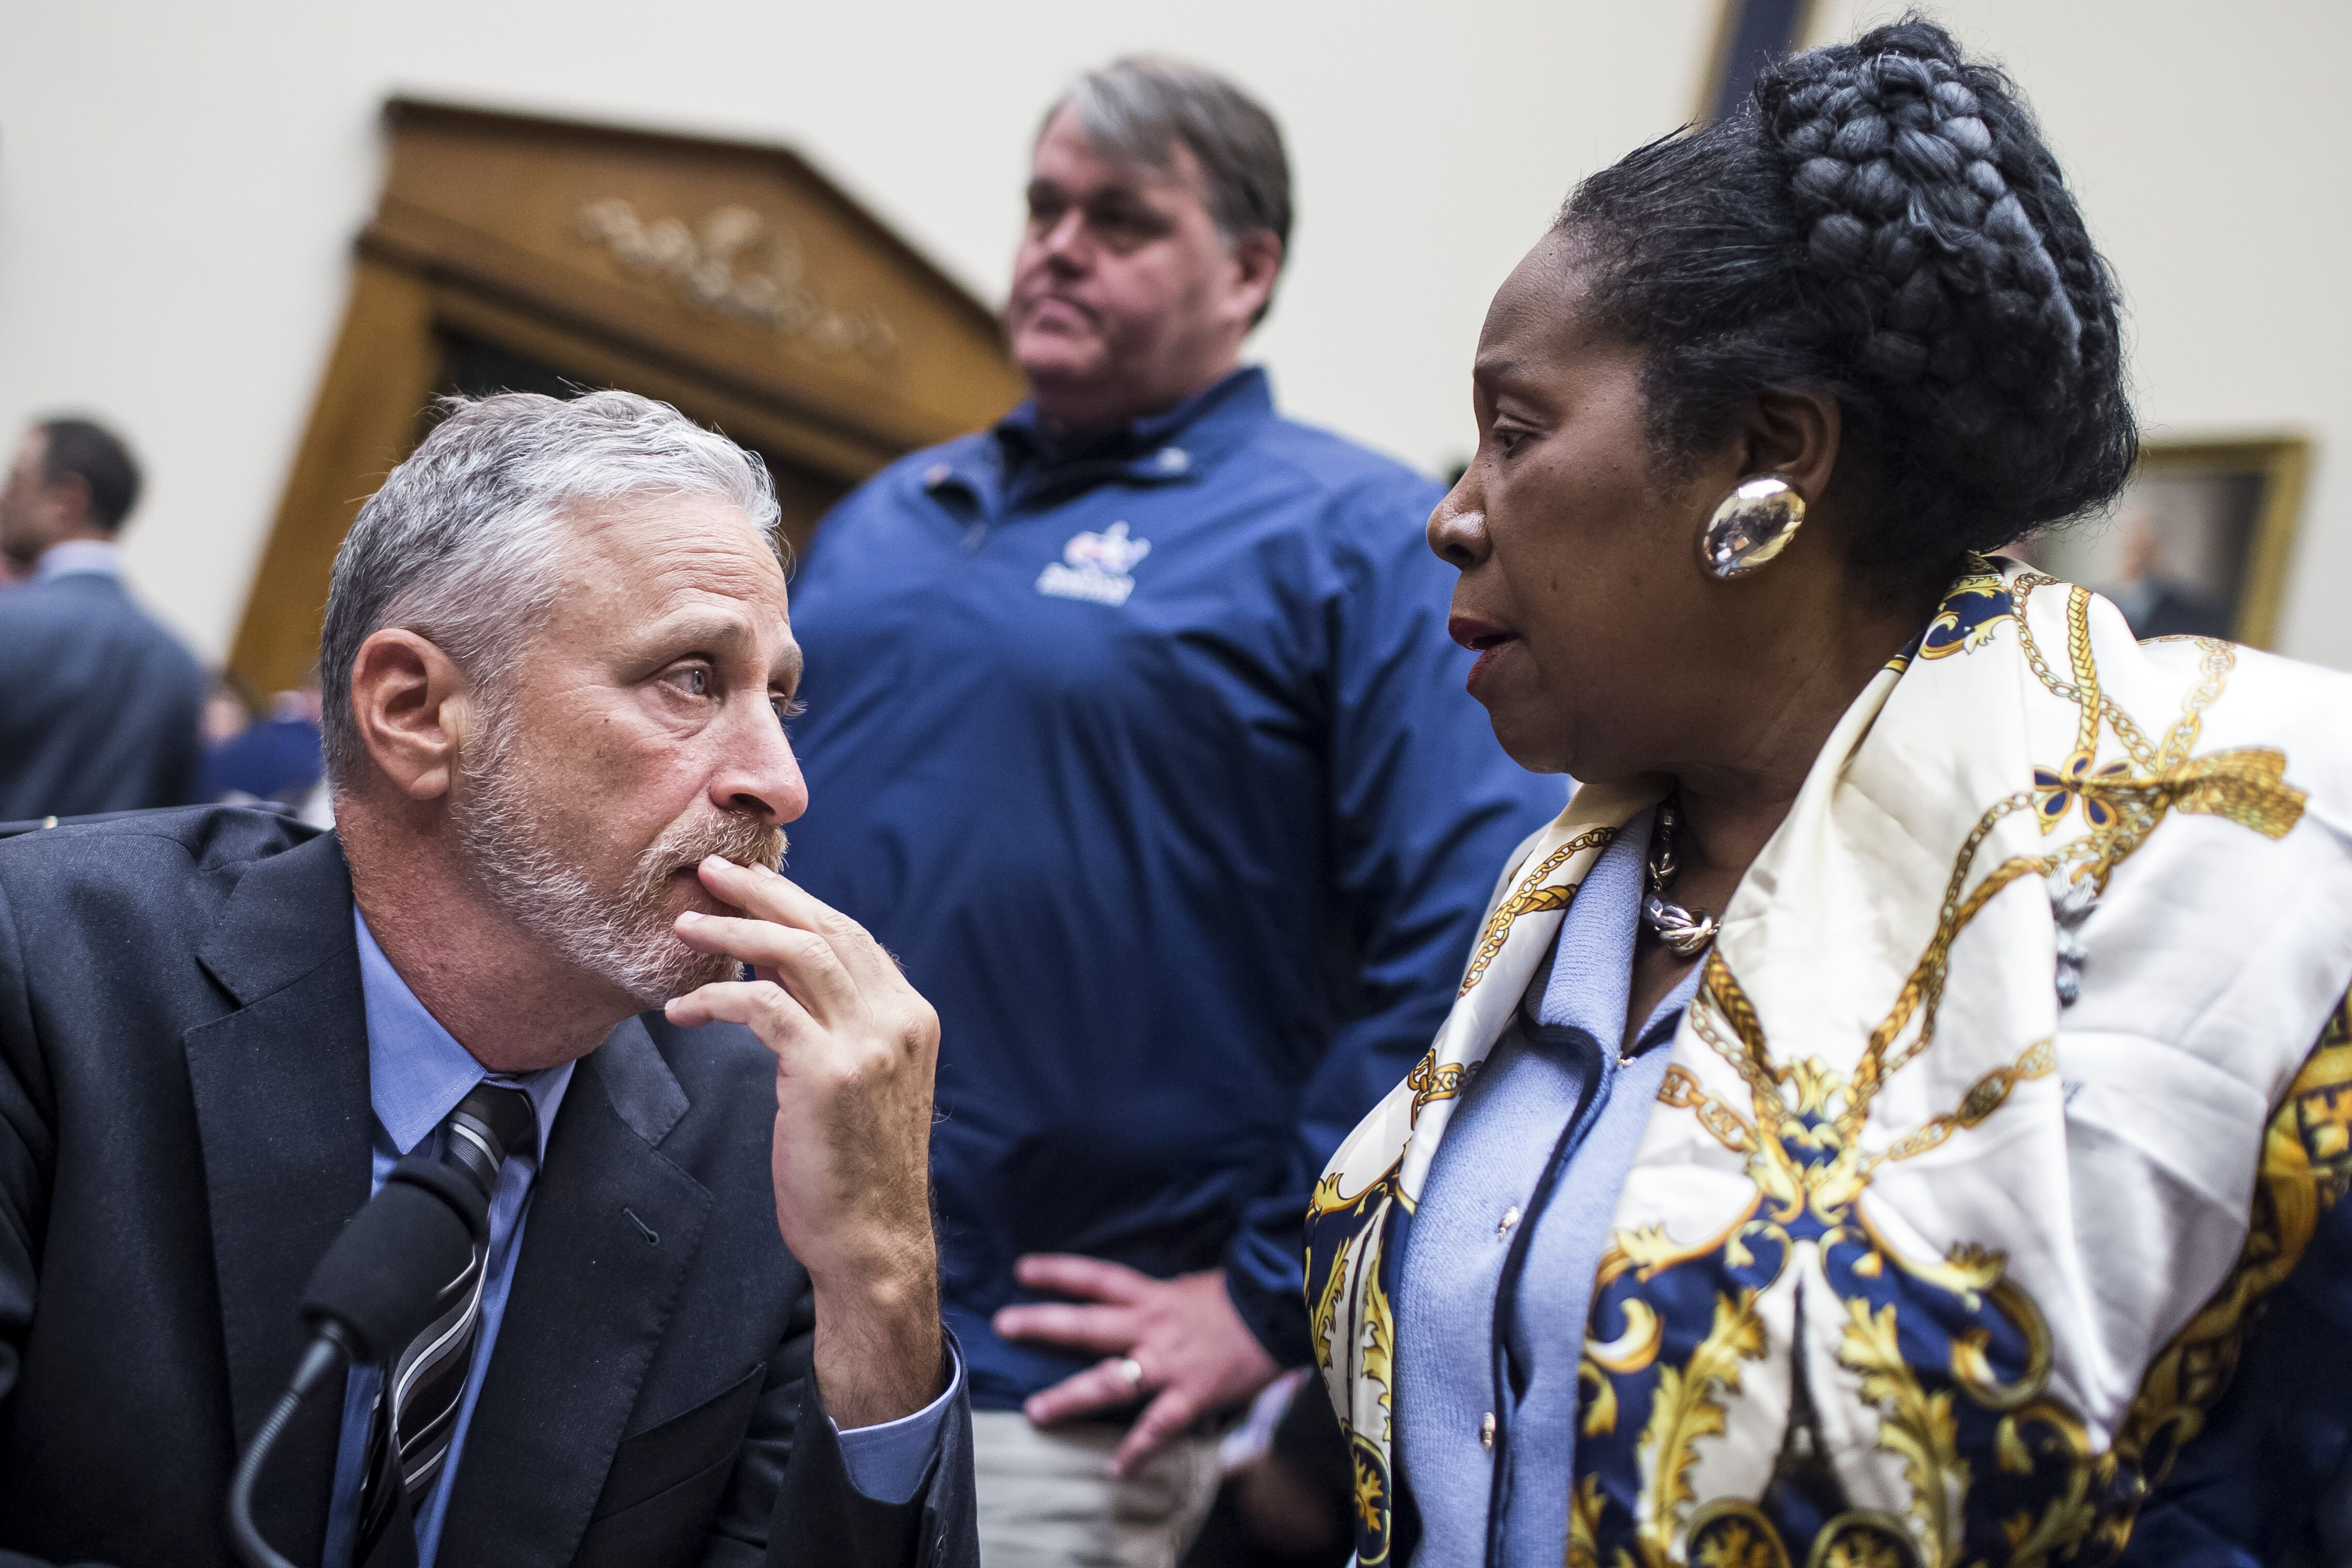 Jon Stewart speaks to Rep. Sheila Jackson Lee (D-TX) on Capitol Hill on June 11, 2019 in Washington, DC. | Source: Getty Images